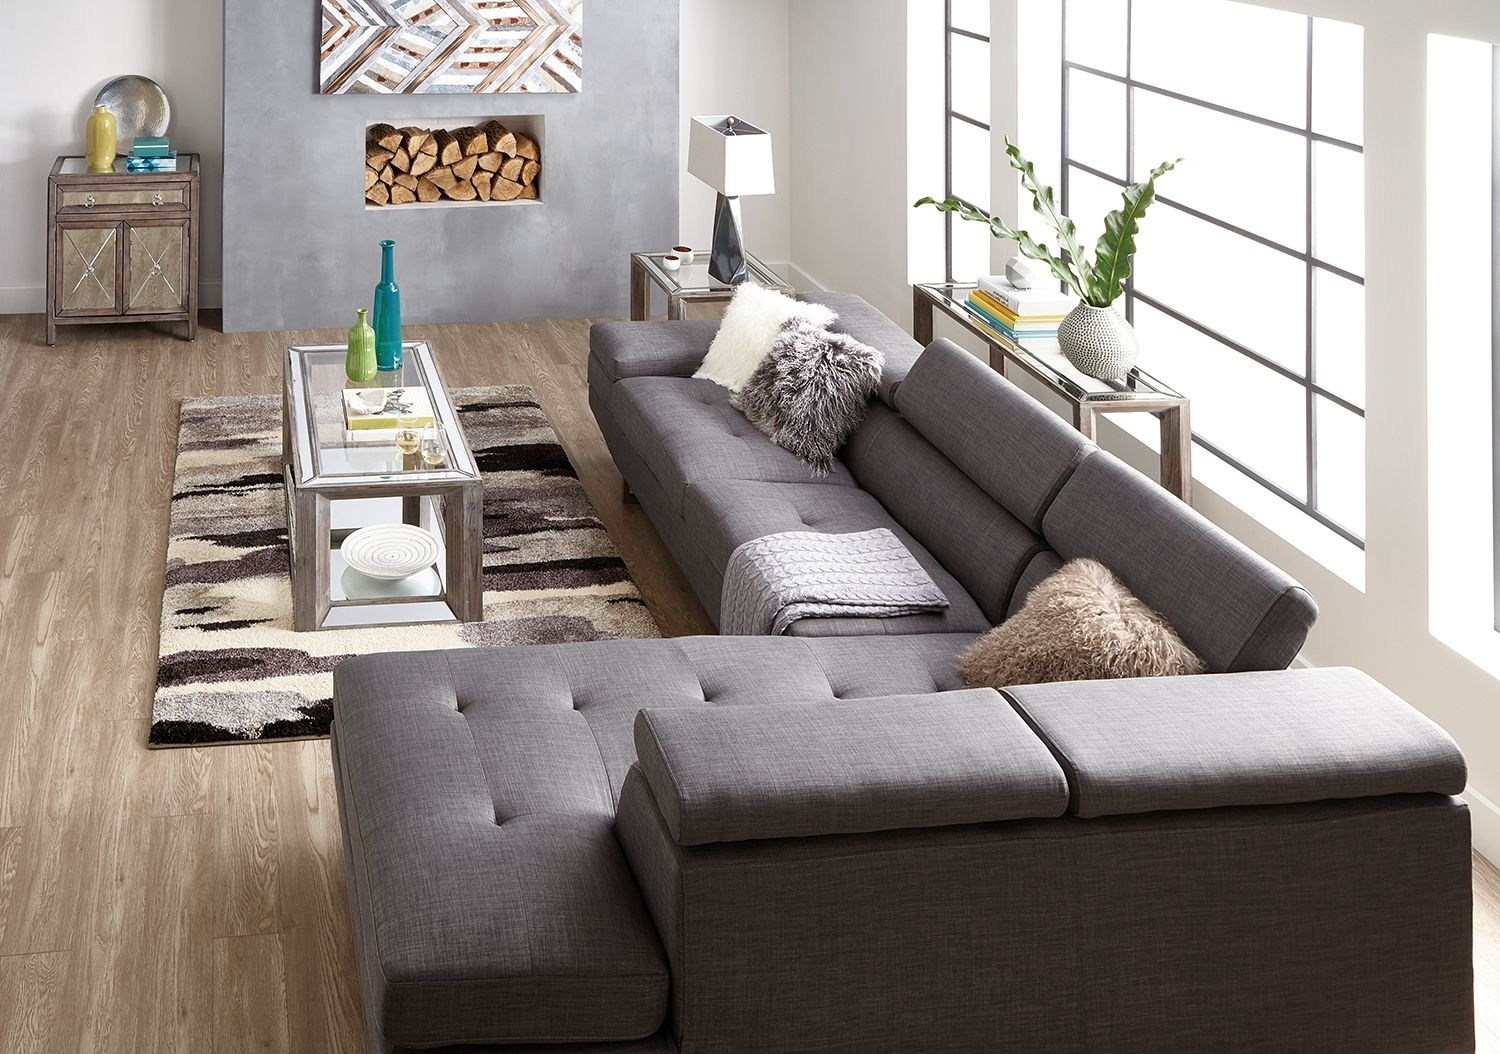 Zeke 2 Piece Linen Look Fabric Right Facing Sectional – Steel Regarding Nico Grey Sectionals With Left Facing Storage Chaise (Image 25 of 25)